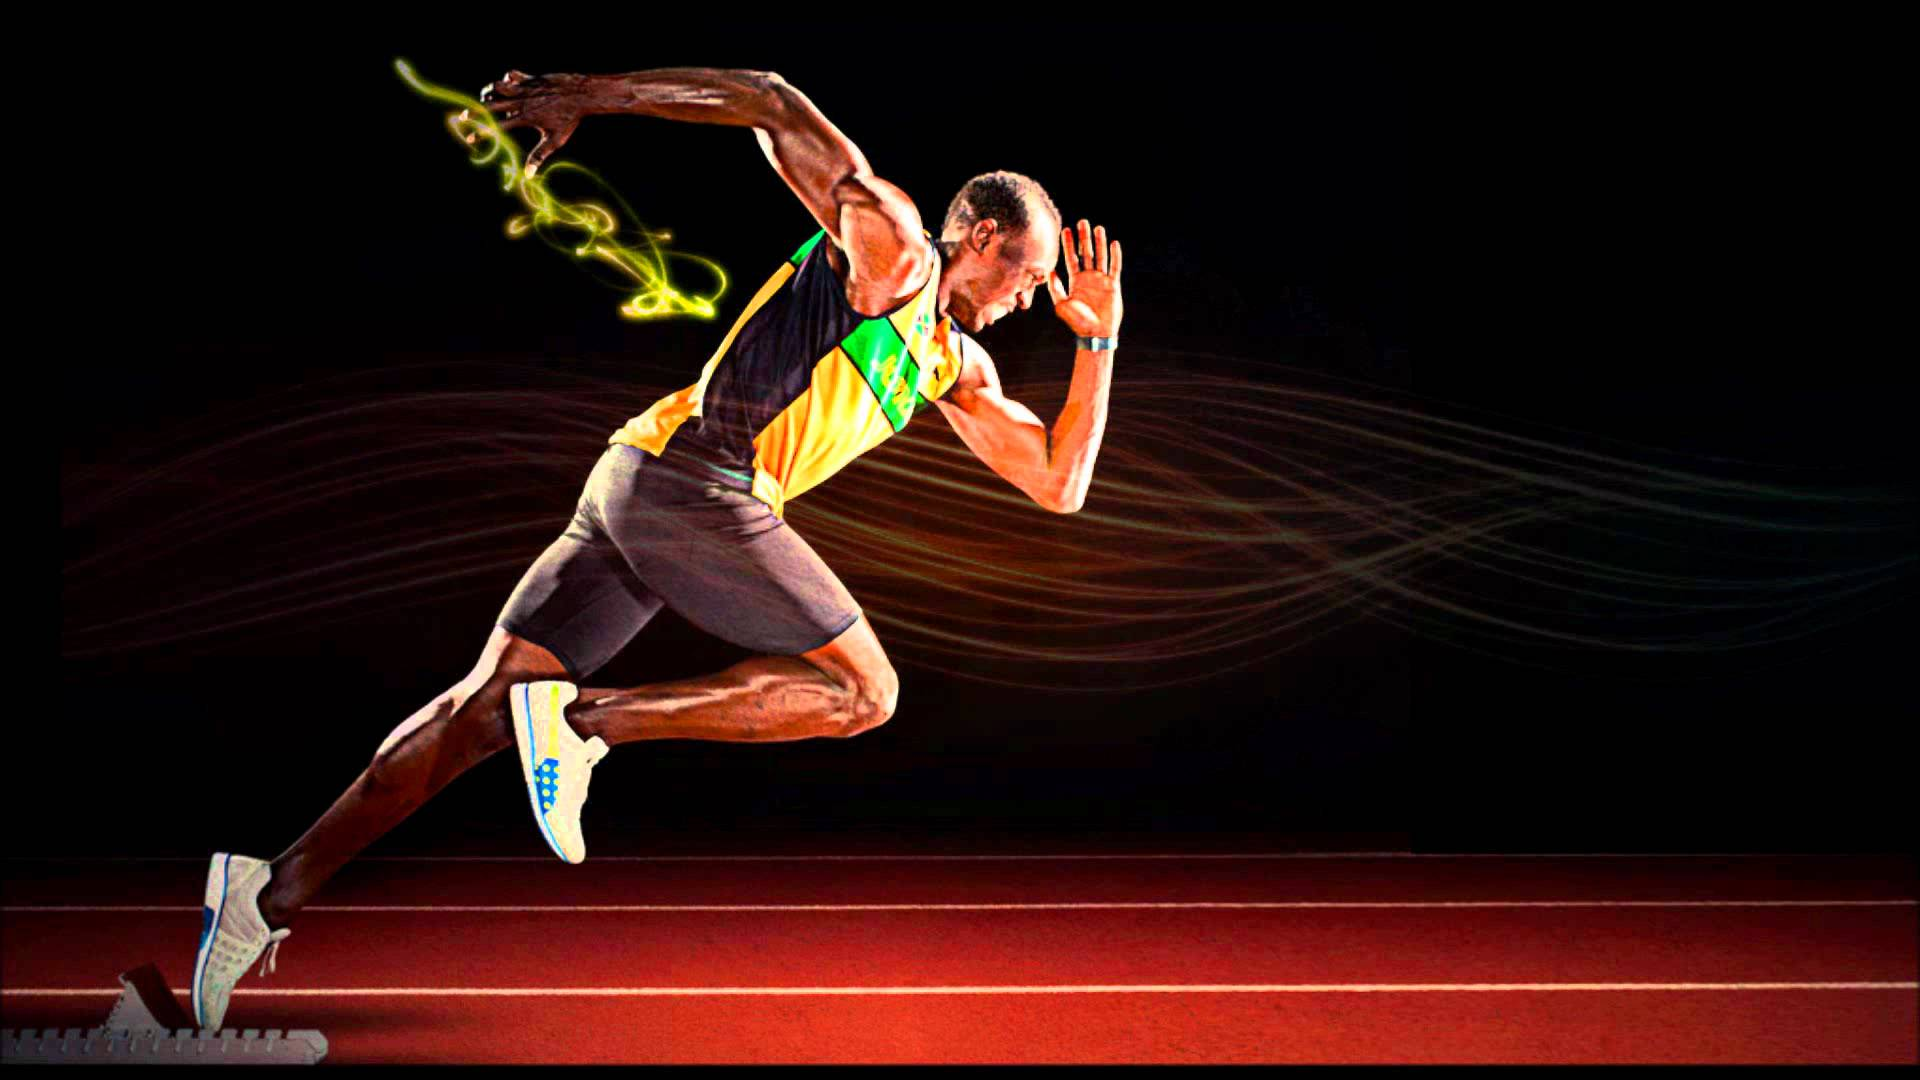 Images For Usain Bolt Running Wallpaper